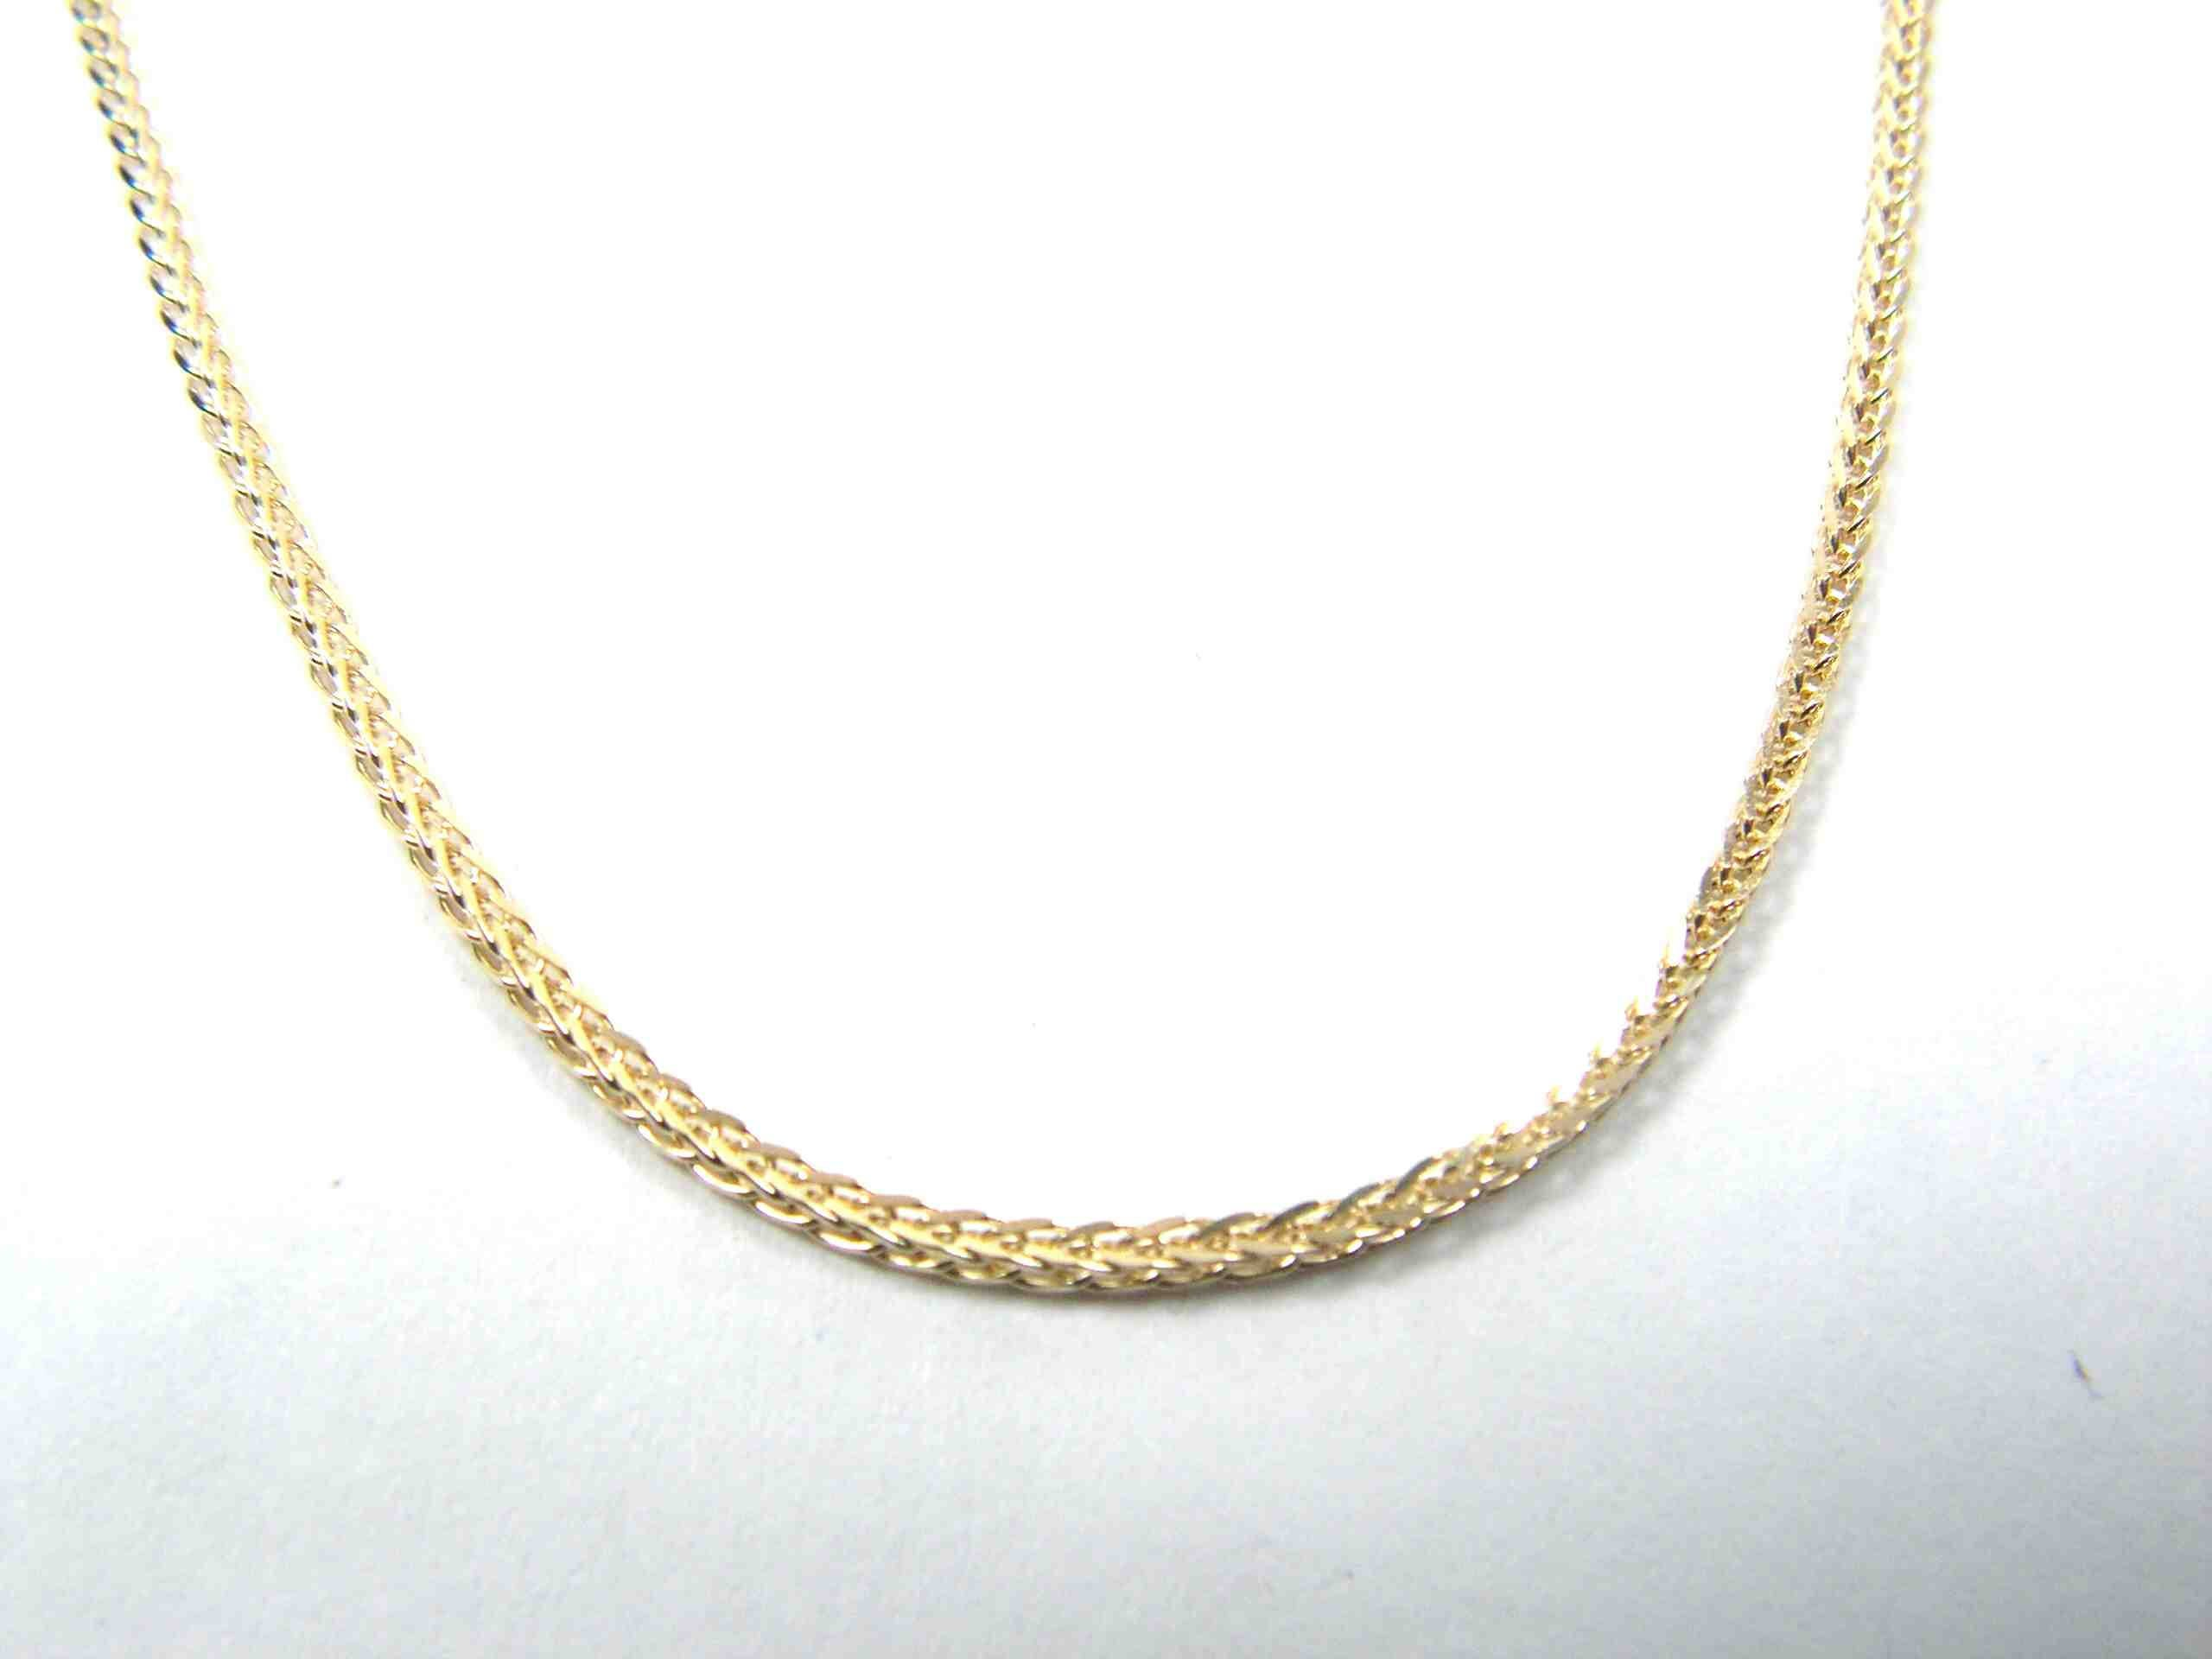 chain online andaaaaaarpf pendant malabar ethnix jewellery buy necklace women diamonds gold for